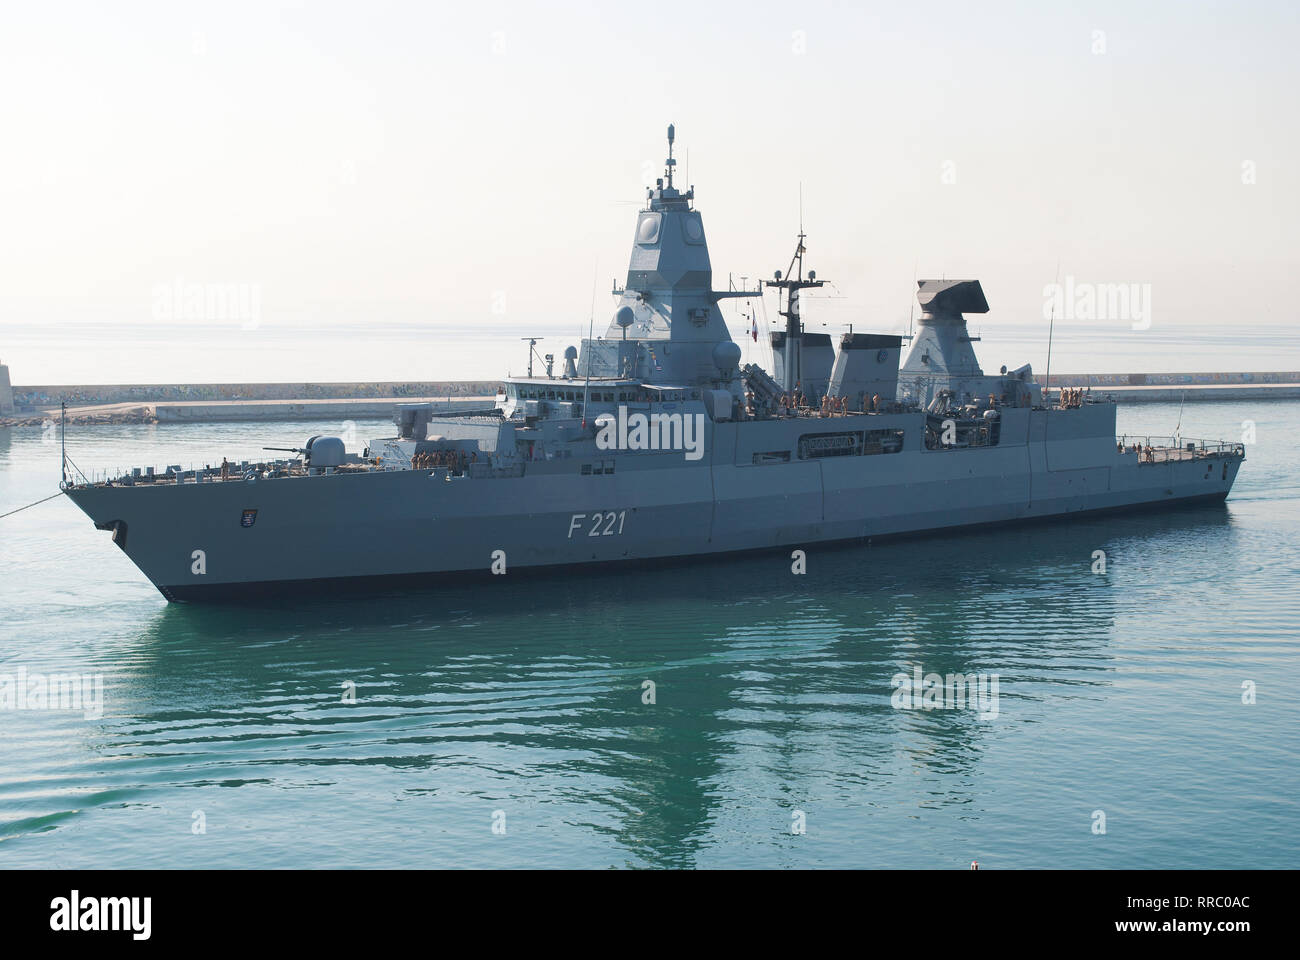 Frigate of the German Navy Hessen entering the port of Barcelona. June 21, 2018. - Stock Image